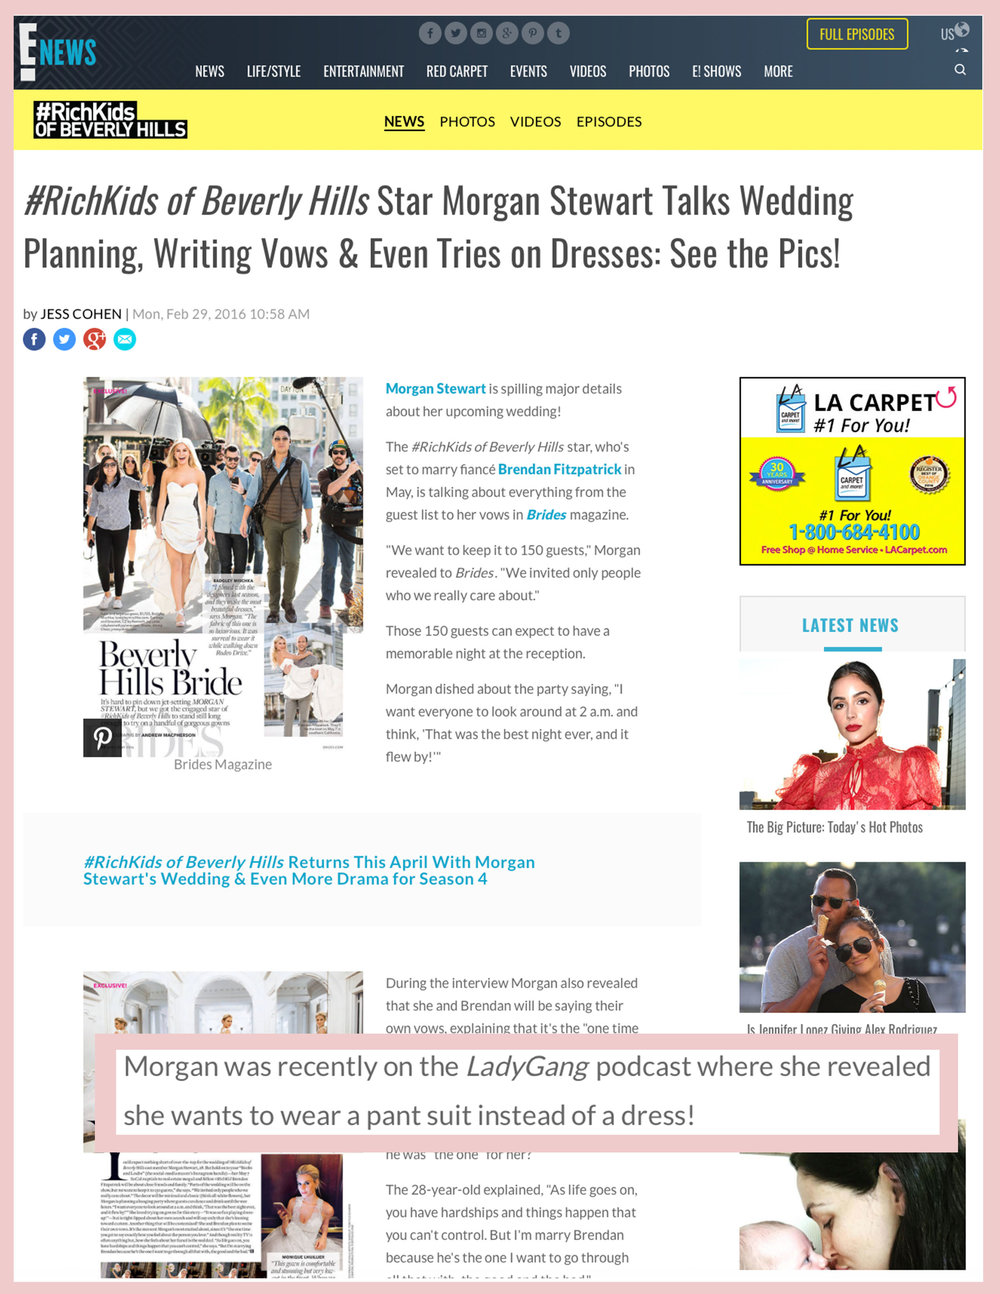 E NEWS LADYGANG RICH KIDS OF Beverly Hills MORGAN STEWART THE LADYGANG